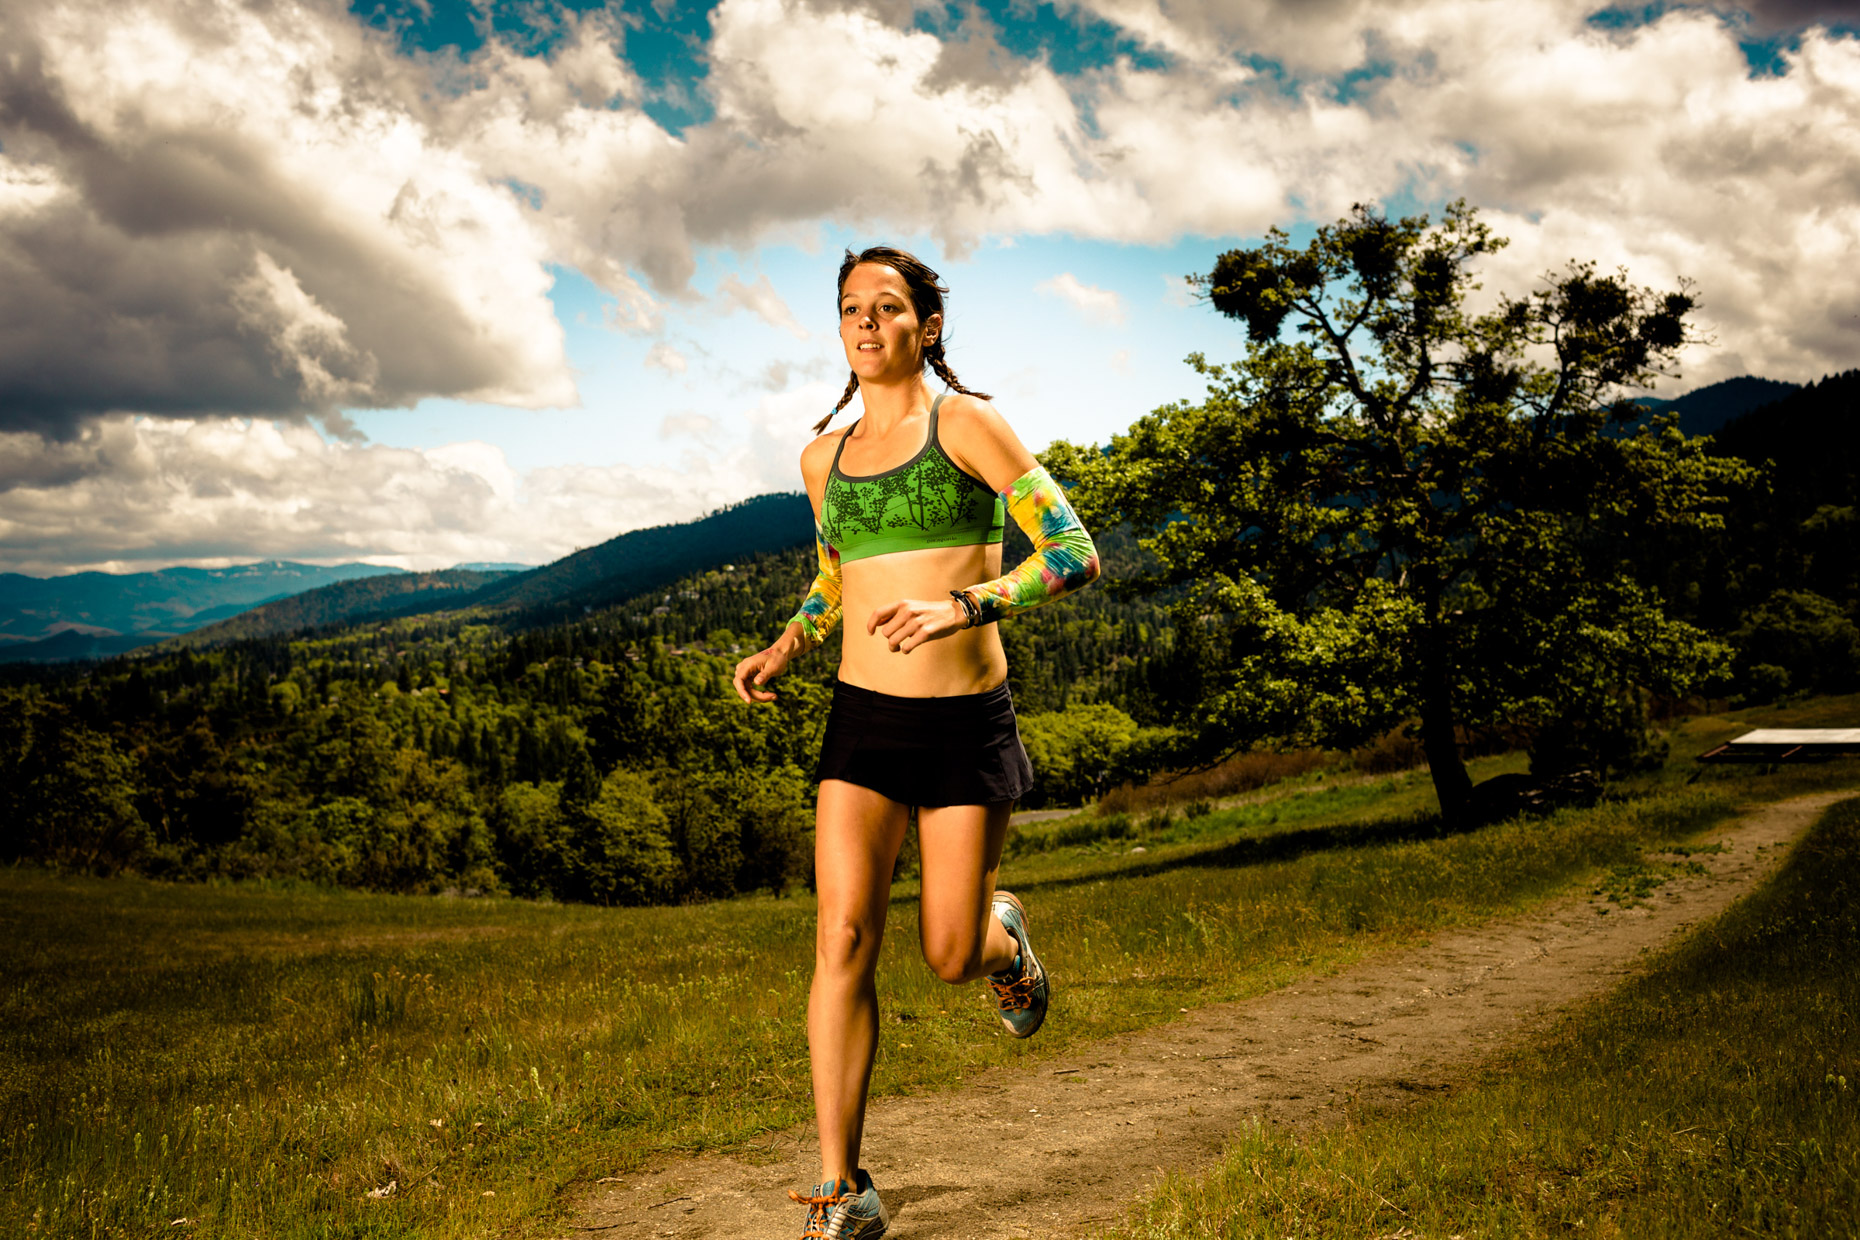 Ultramarathon runner Jenn Shelton for Outside Magazine